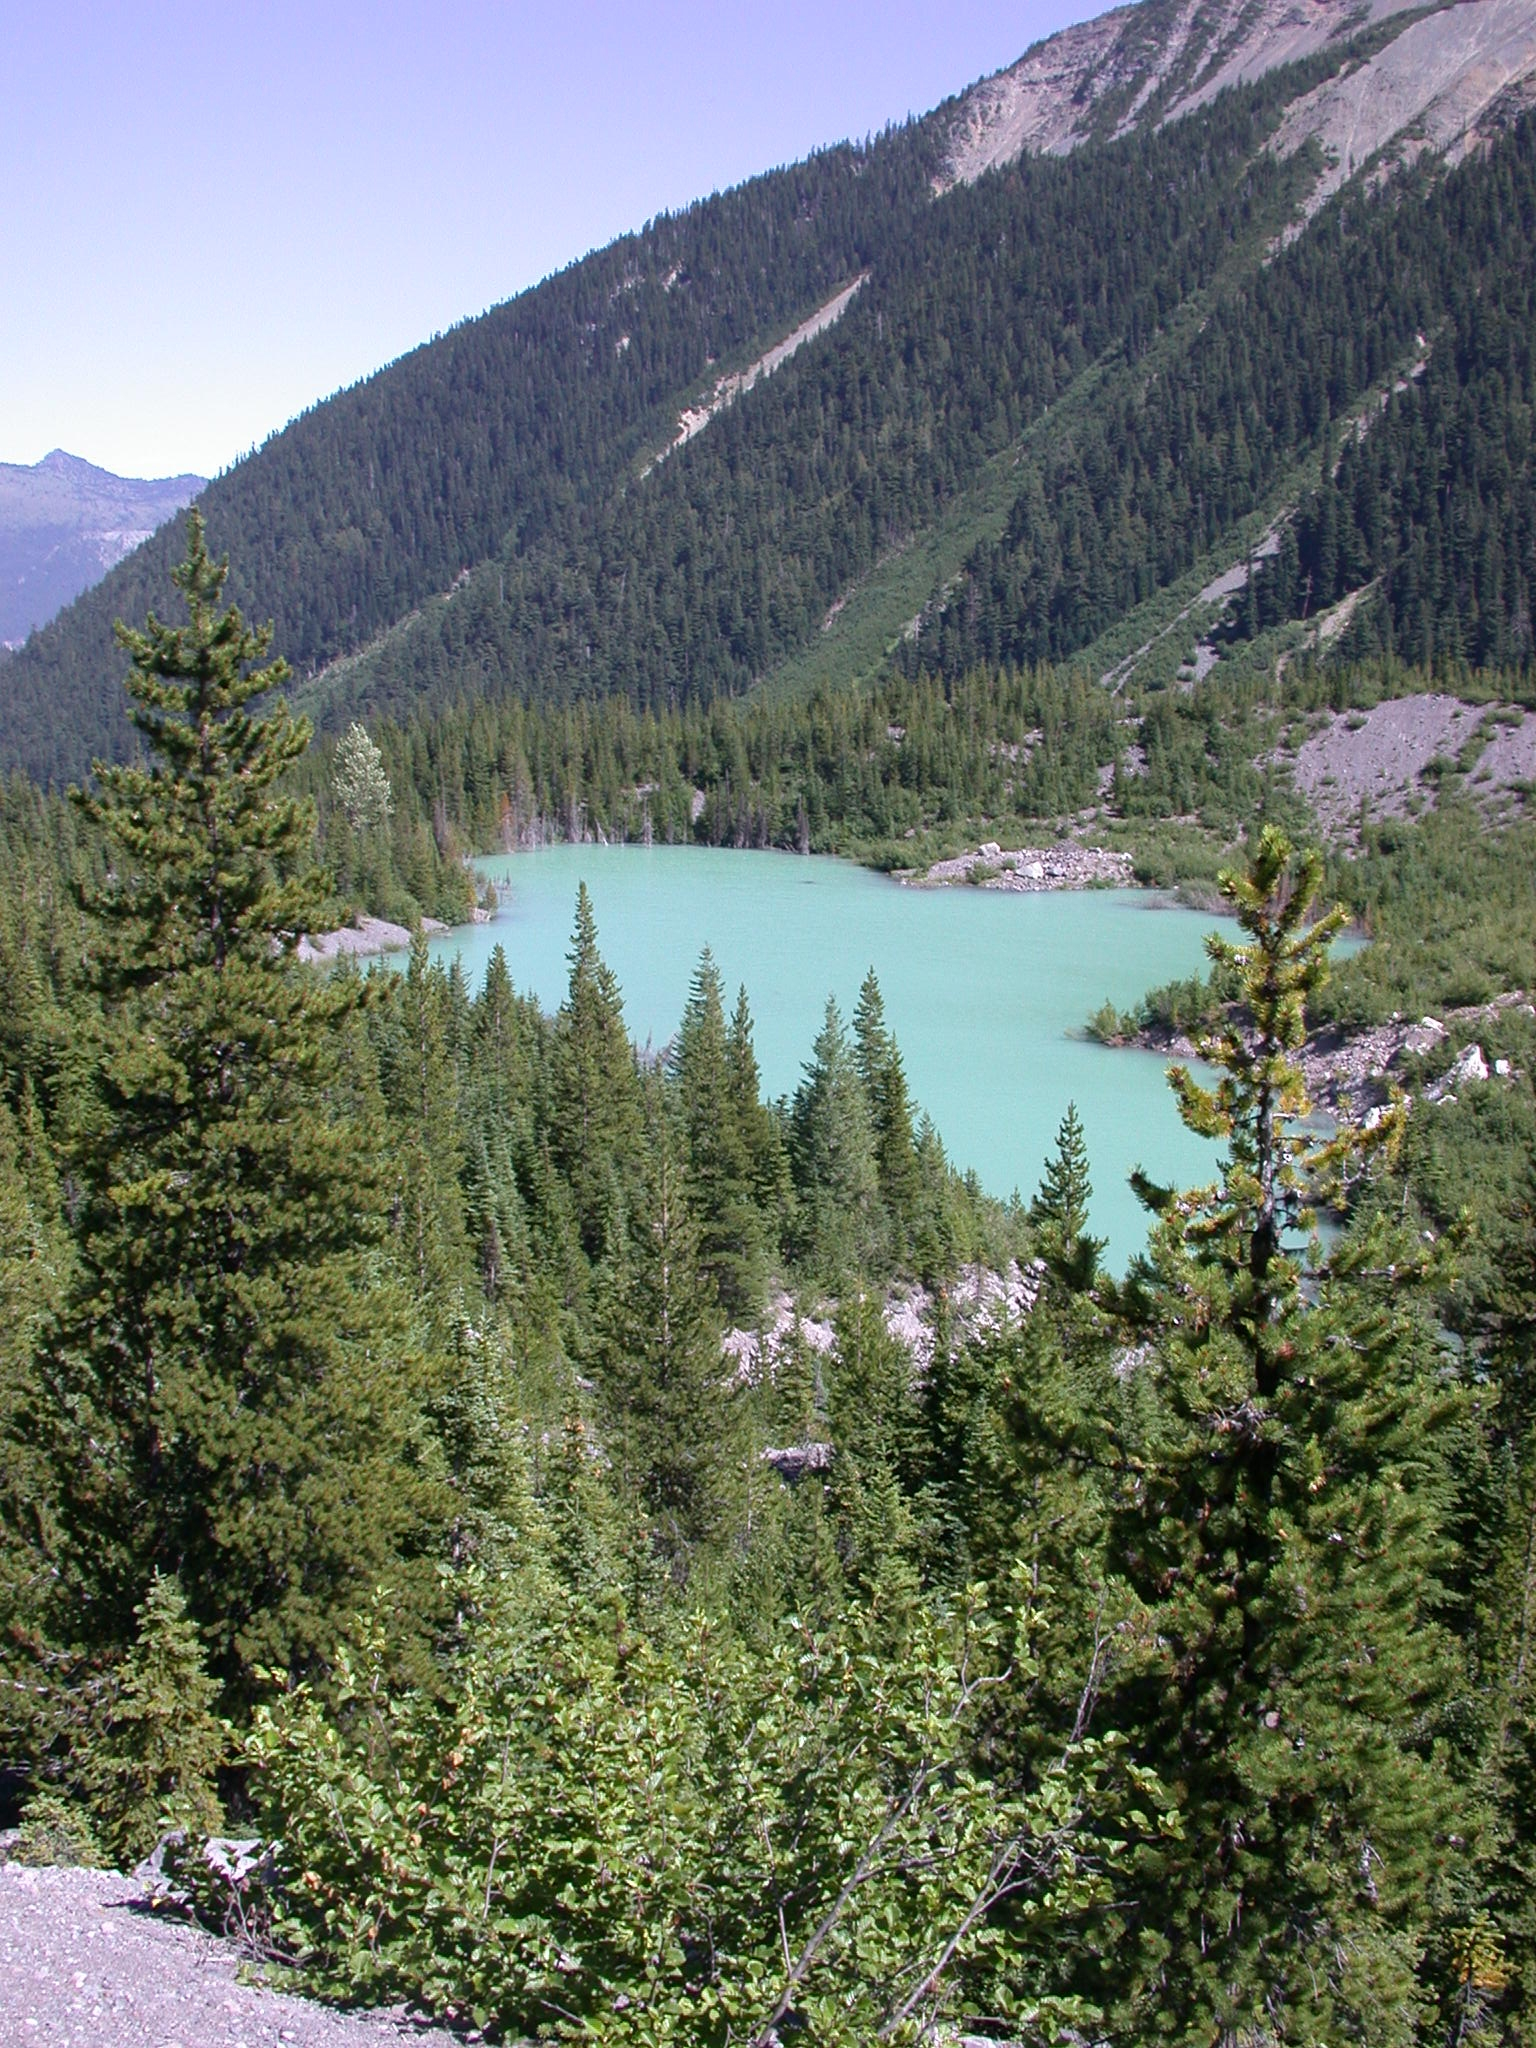 Glacial Lake From Glacier Trail on Mount Rainier